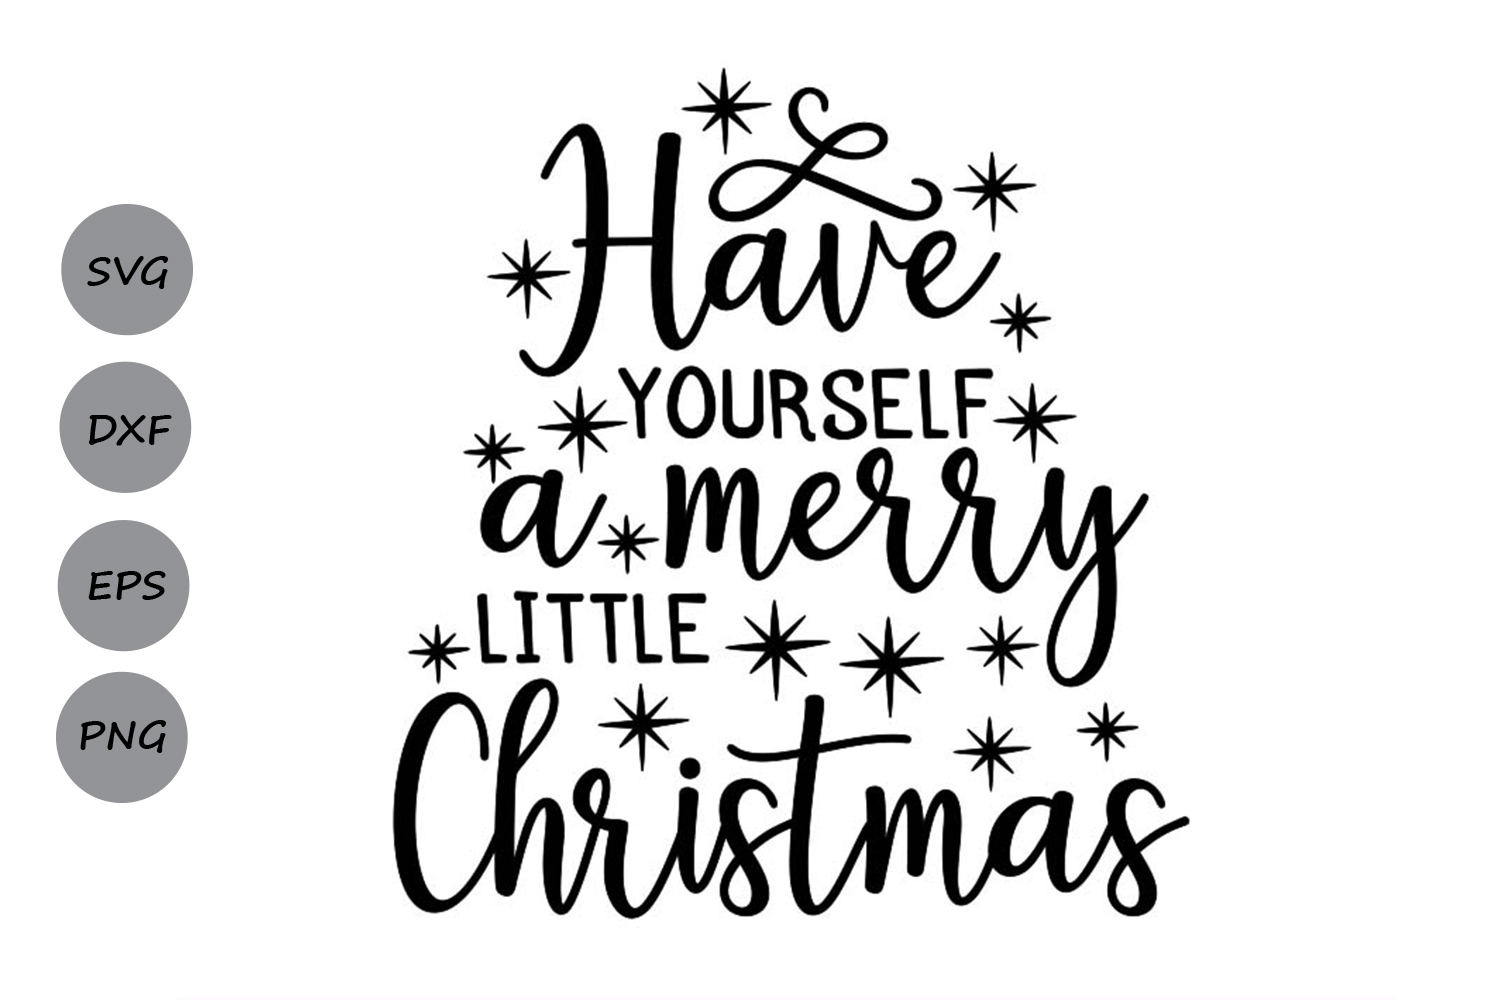 Download Free Have Yourself A Merry Little Christmas Graphic By Cosmosfineart for Cricut Explore, Silhouette and other cutting machines.